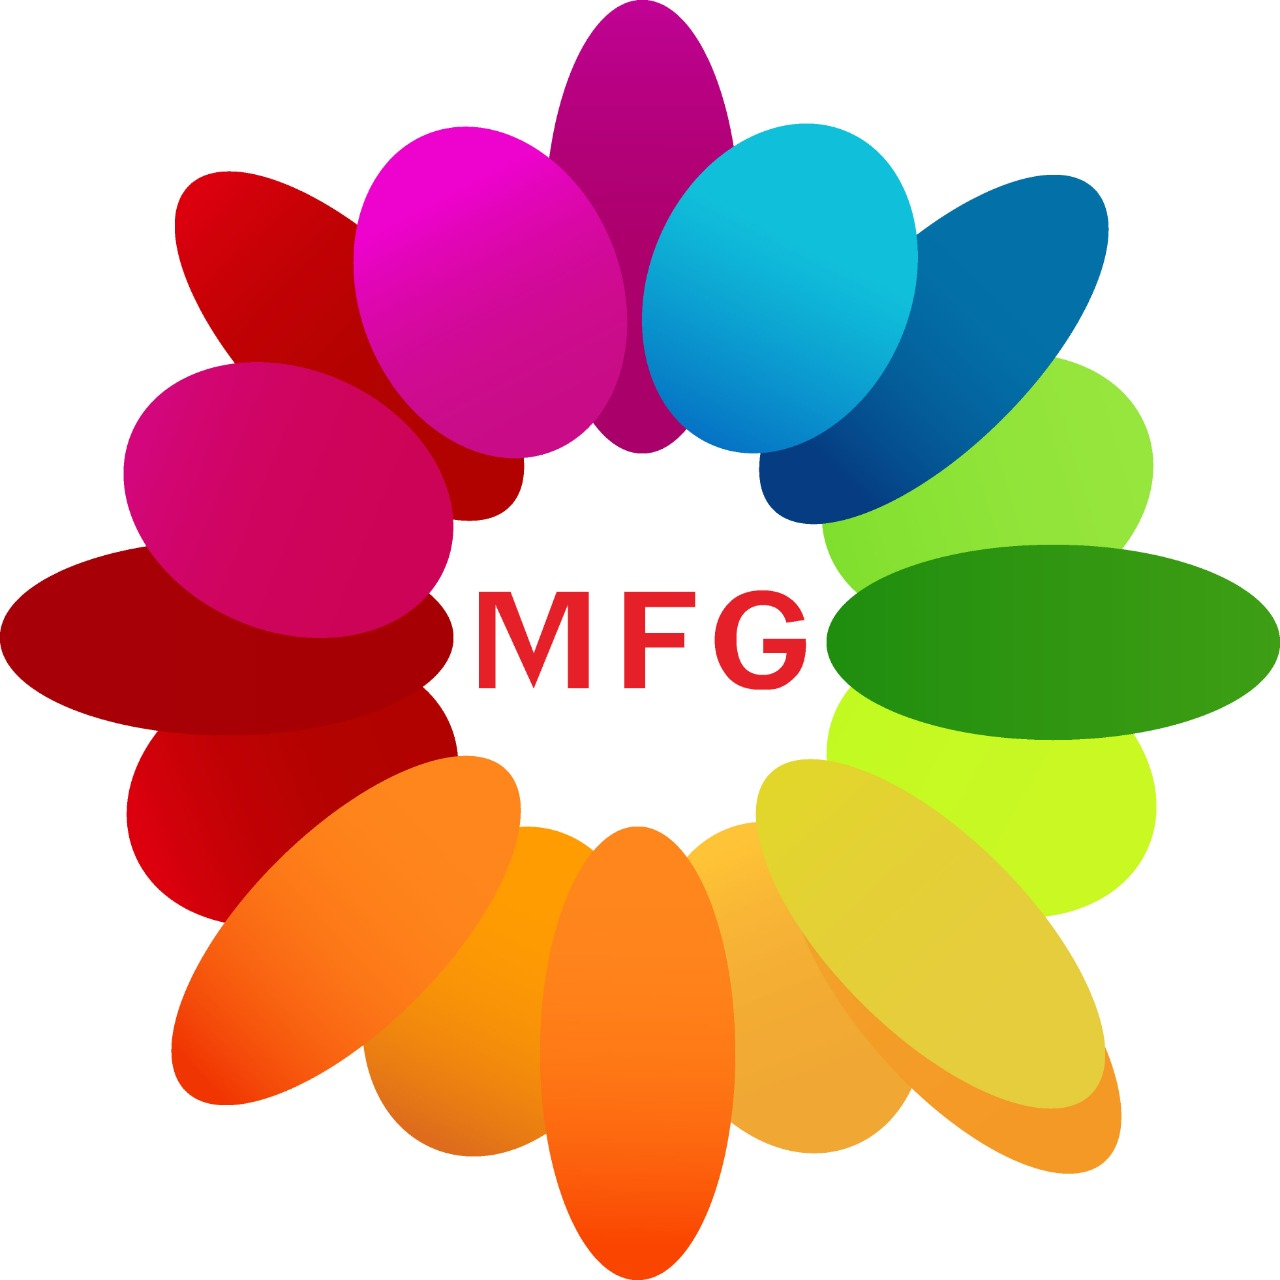 Basket of 15 yellow roses with 1 pound chocovanilla cake with 6 inch white teddybear